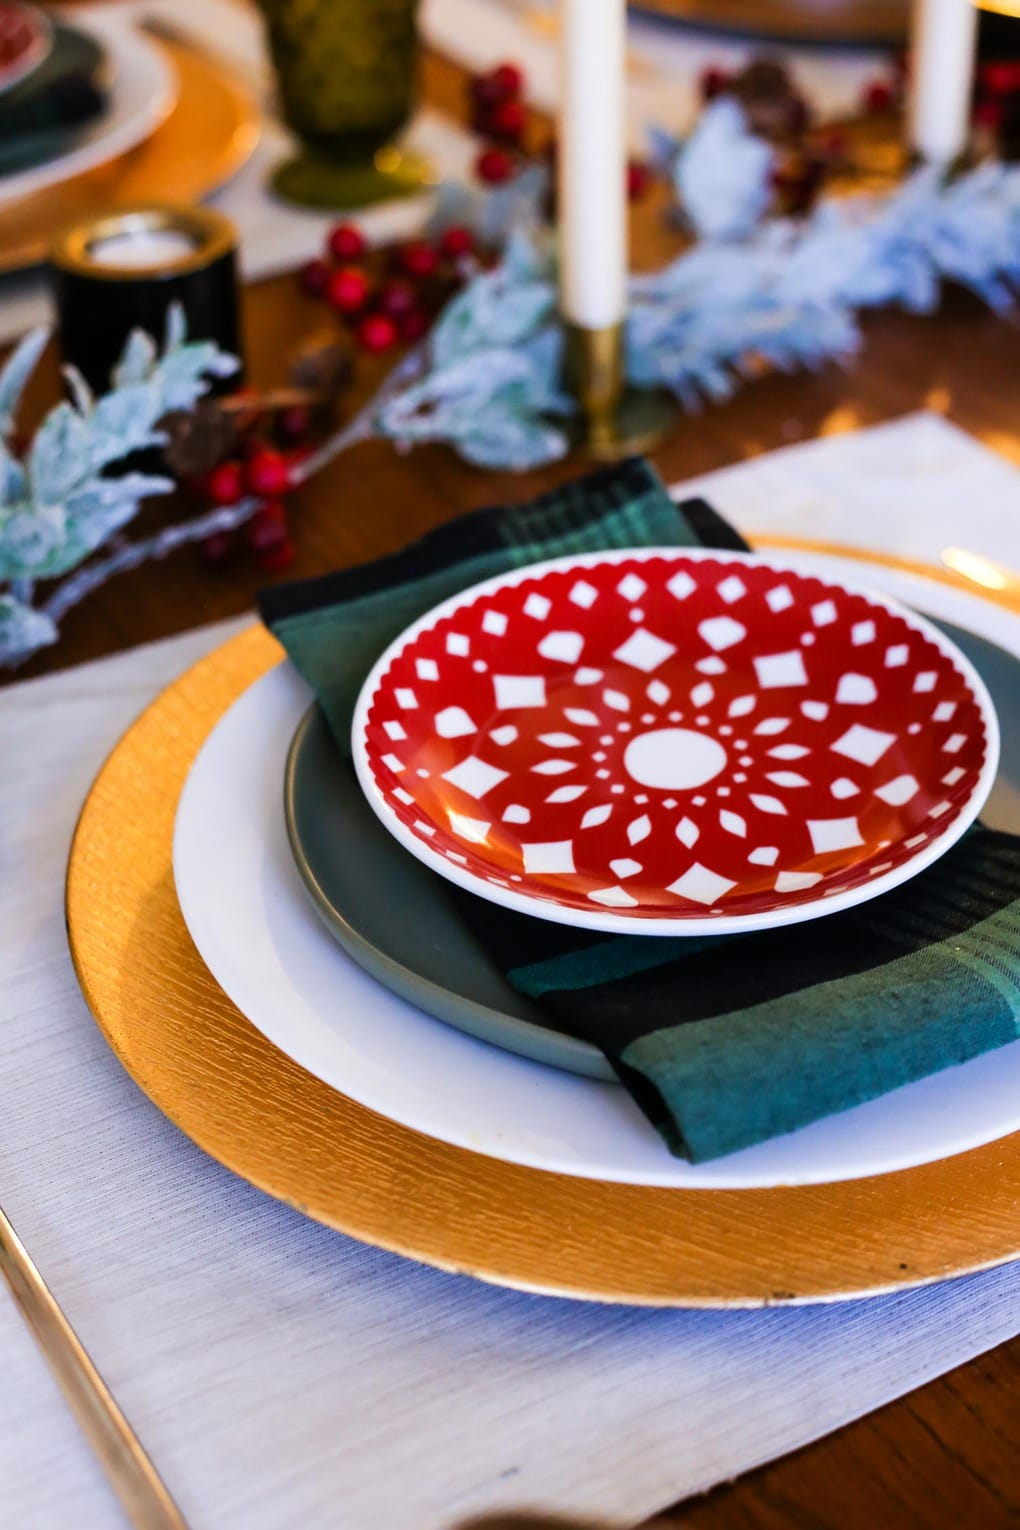 A beautiful and simple traditional Christmas table